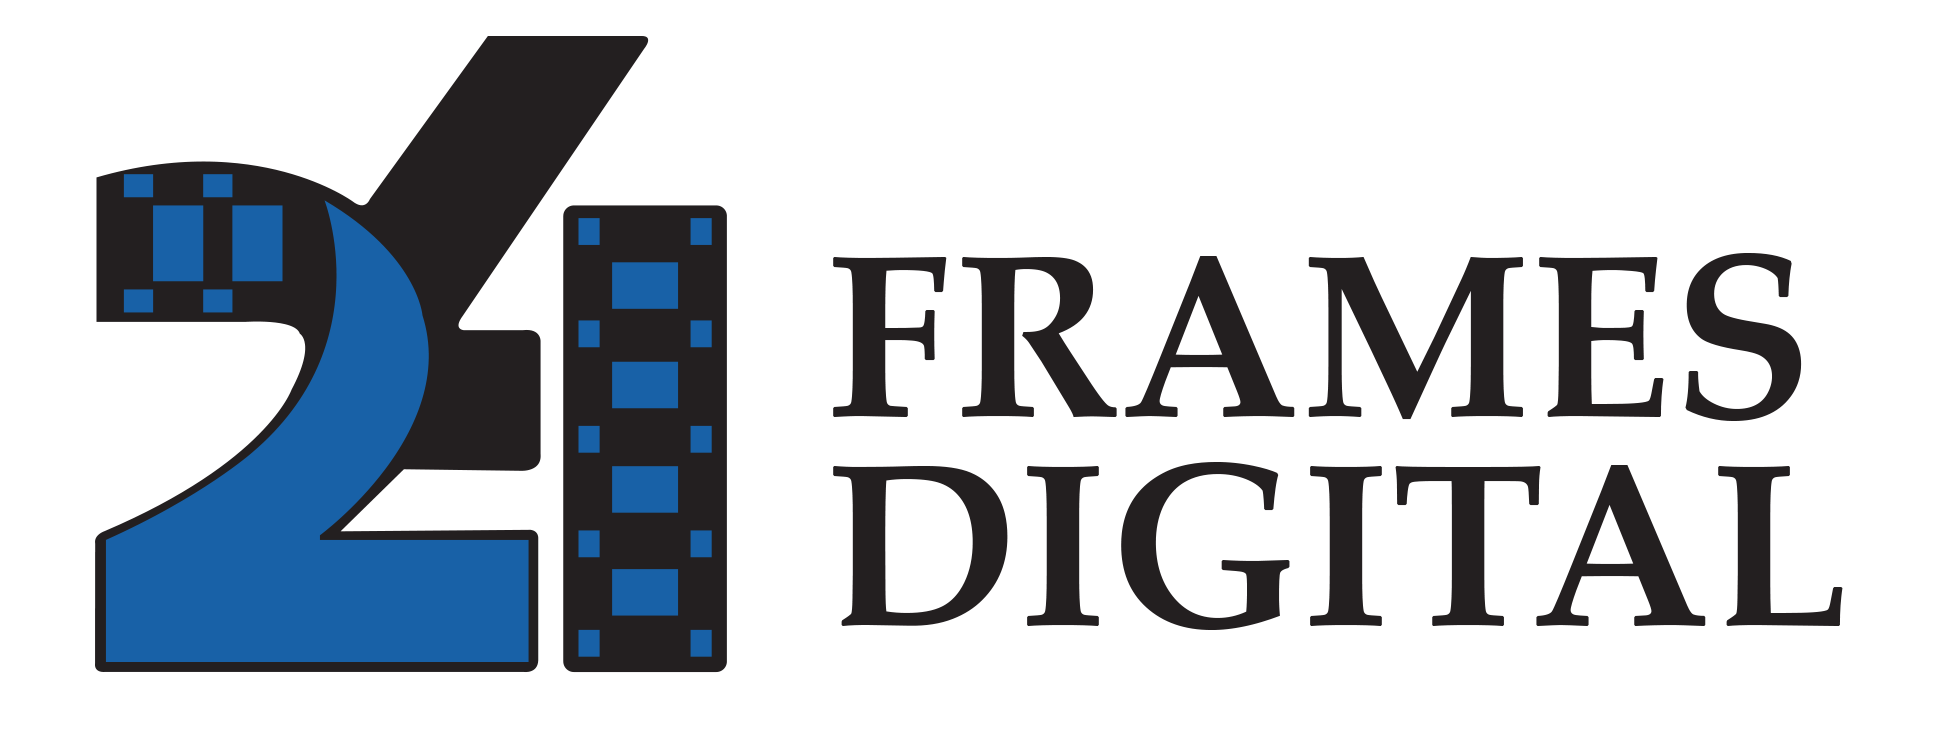 24 Frames Digital Logo